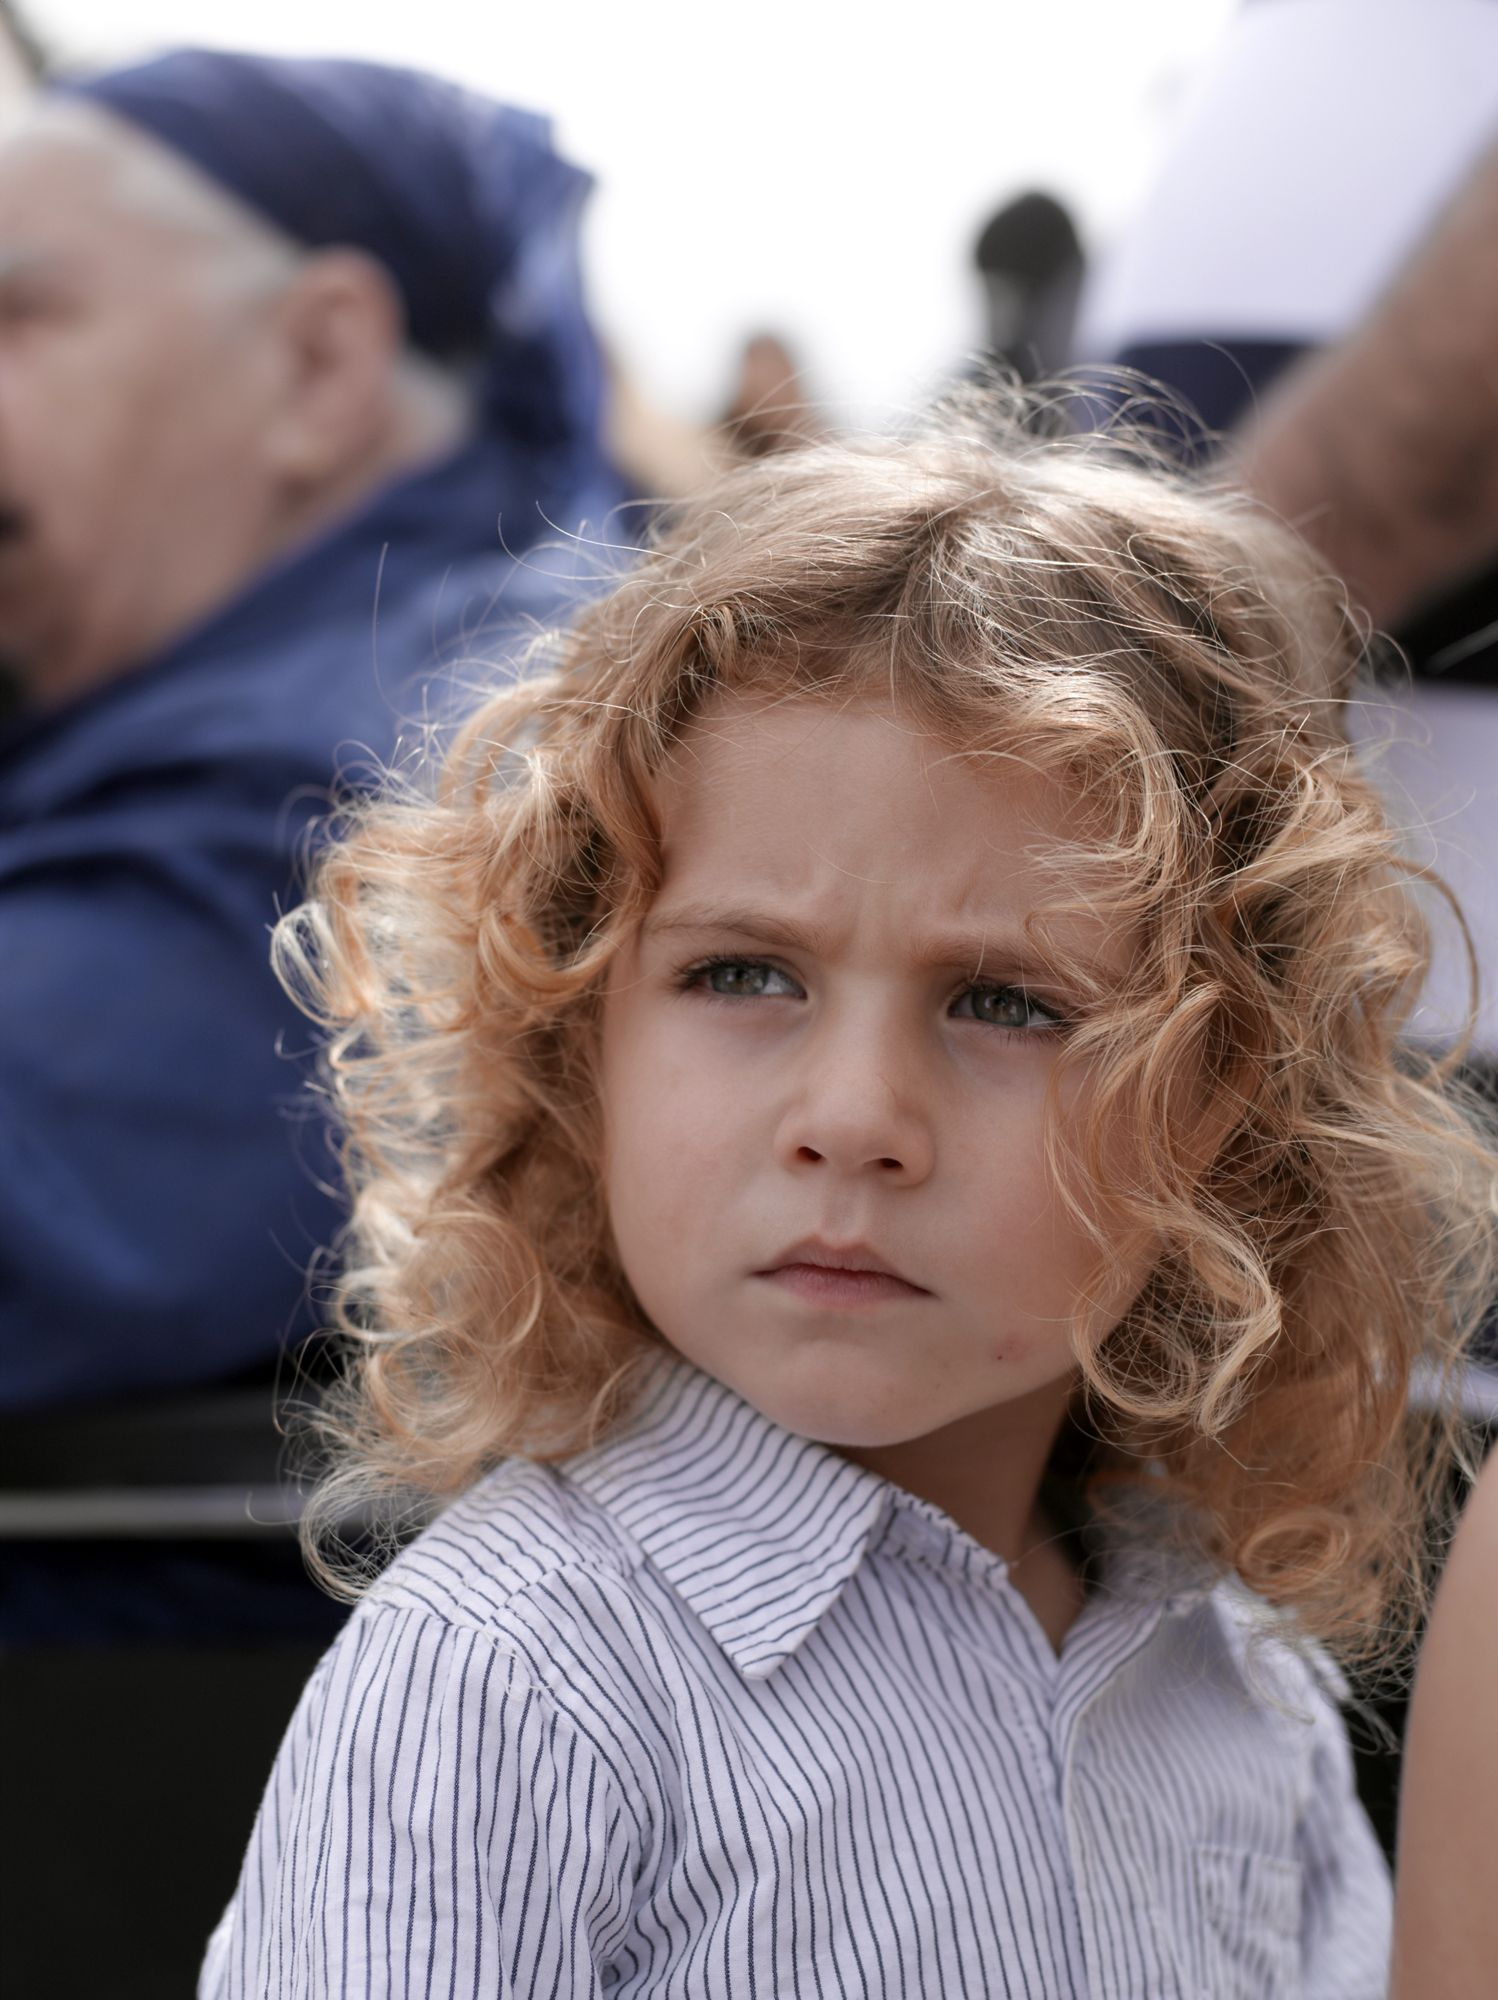 Children Of Israel Home Boy Hairstyles Boys Long Hairstyles Toddler Boy Long Hair